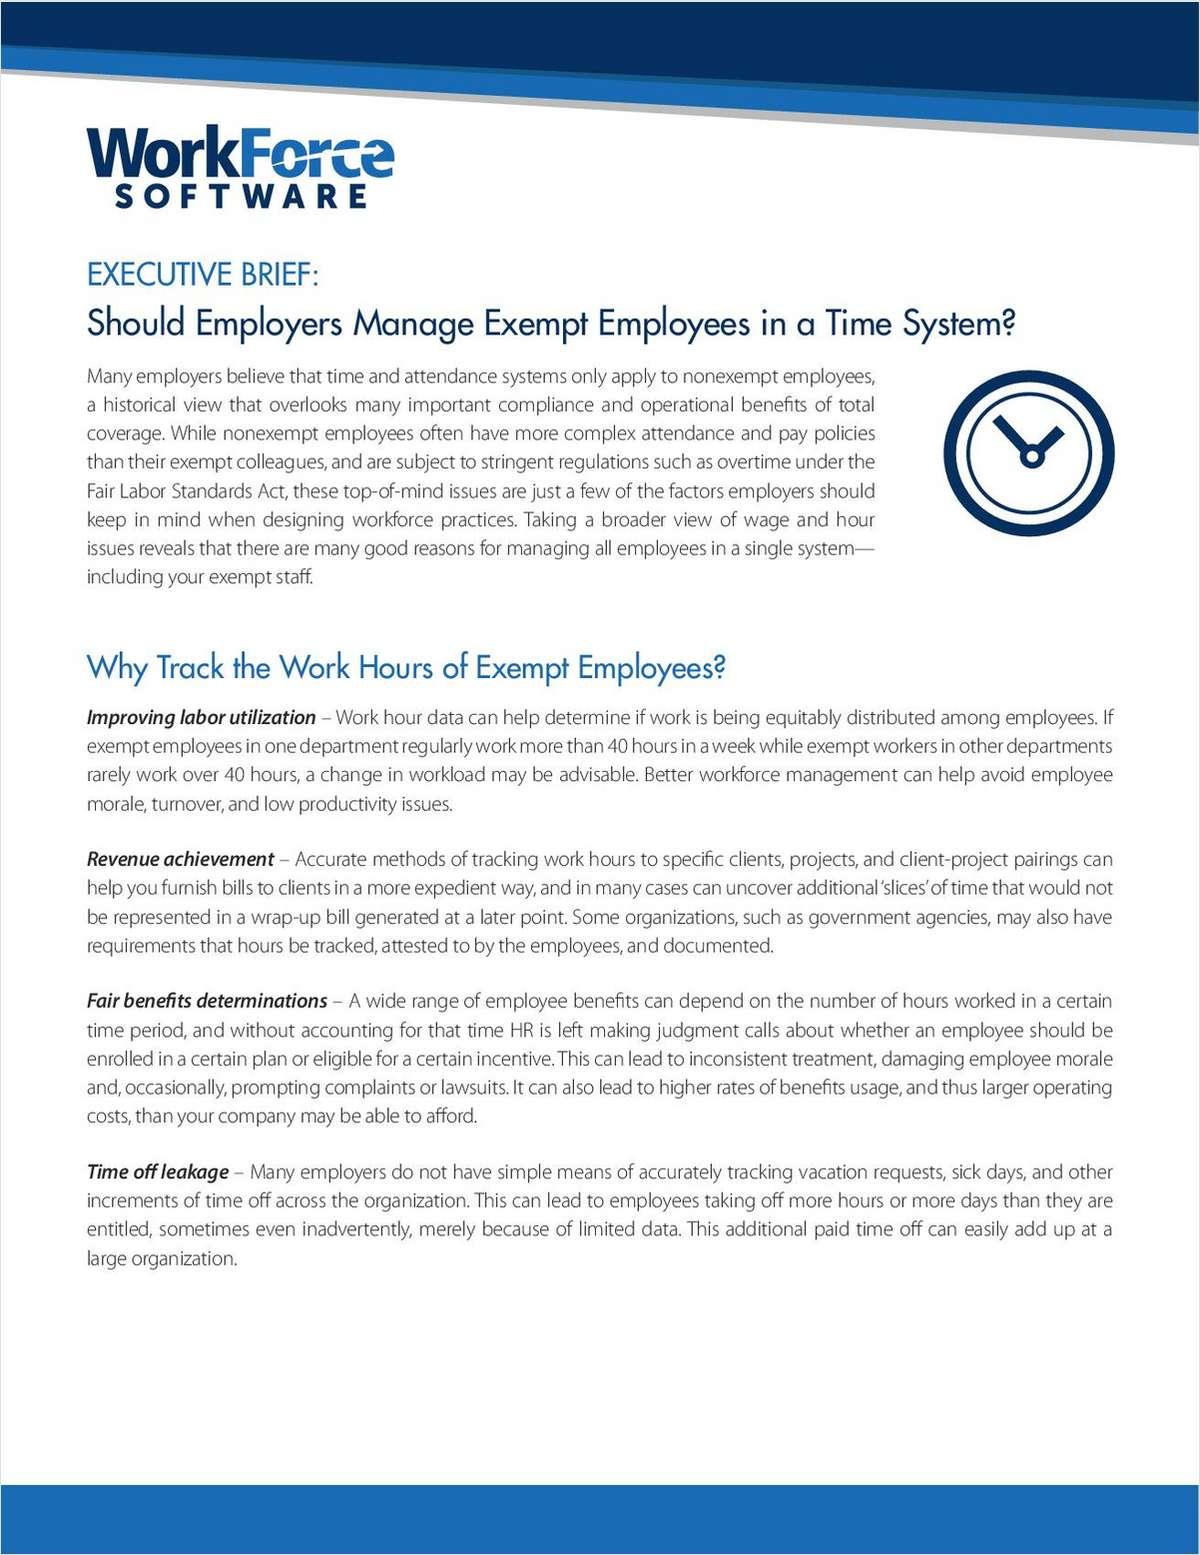 How to Manage Exempt Employees: A White Paper For Employers